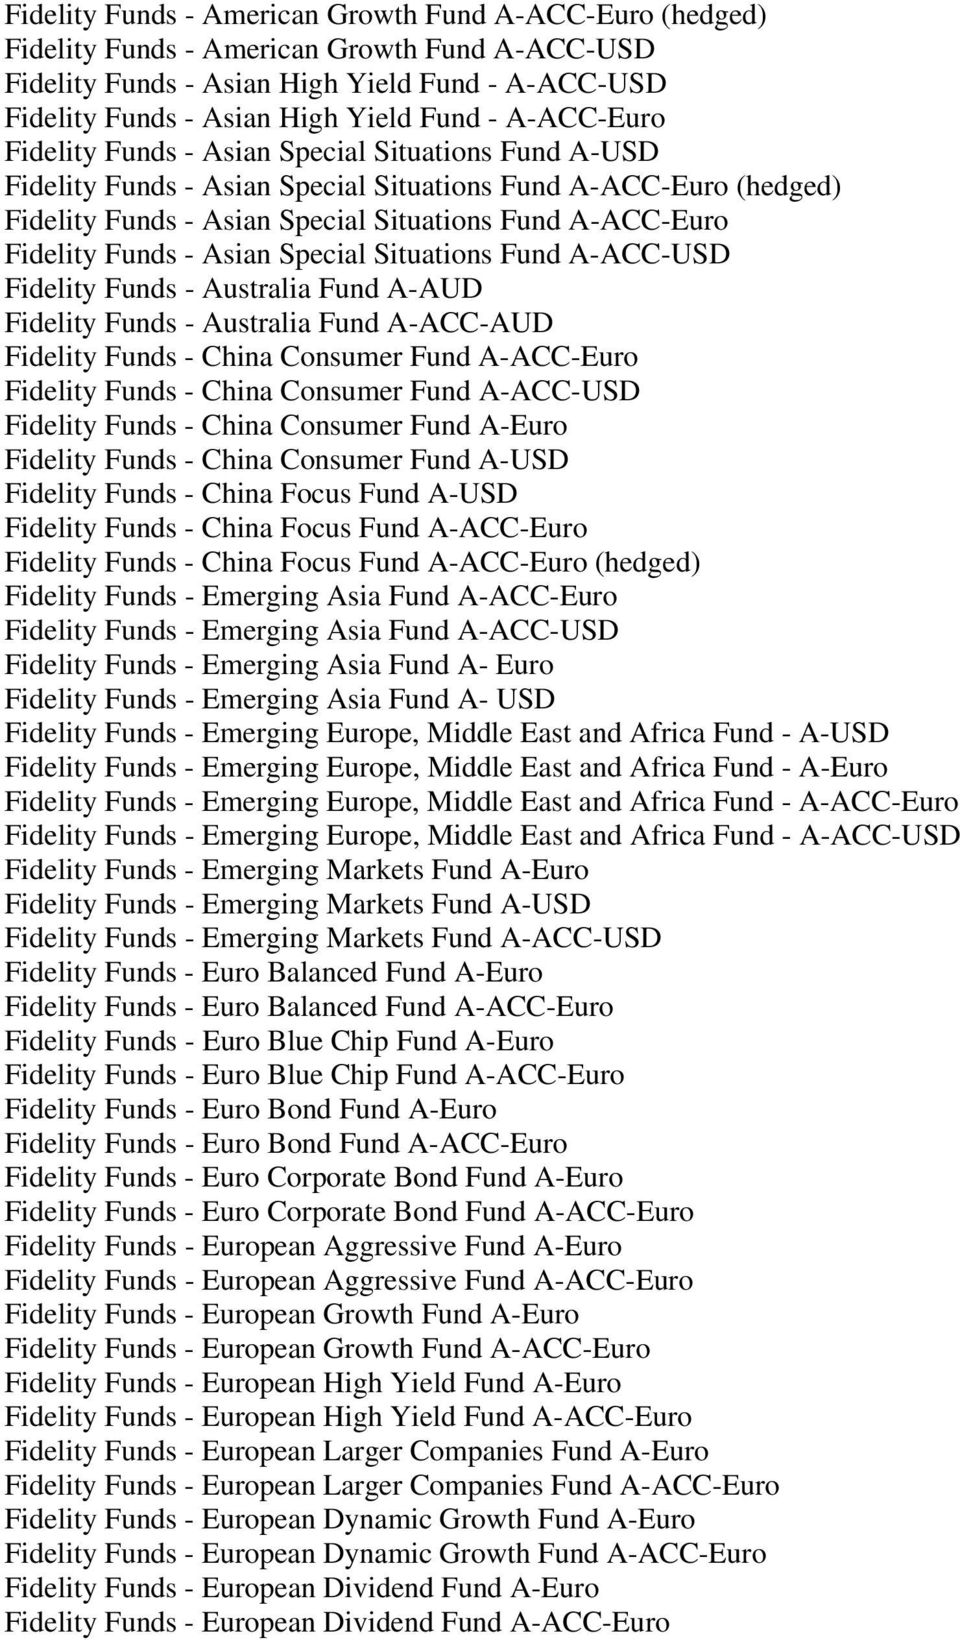 Funds - Asian Special Situations Fund A-ACC-USD Fidelity Funds - Australia Fund A-AUD Fidelity Funds - Australia Fund A-ACC-AUD Fidelity Funds - China Consumer Fund A-ACC-Euro Fidelity Funds - China